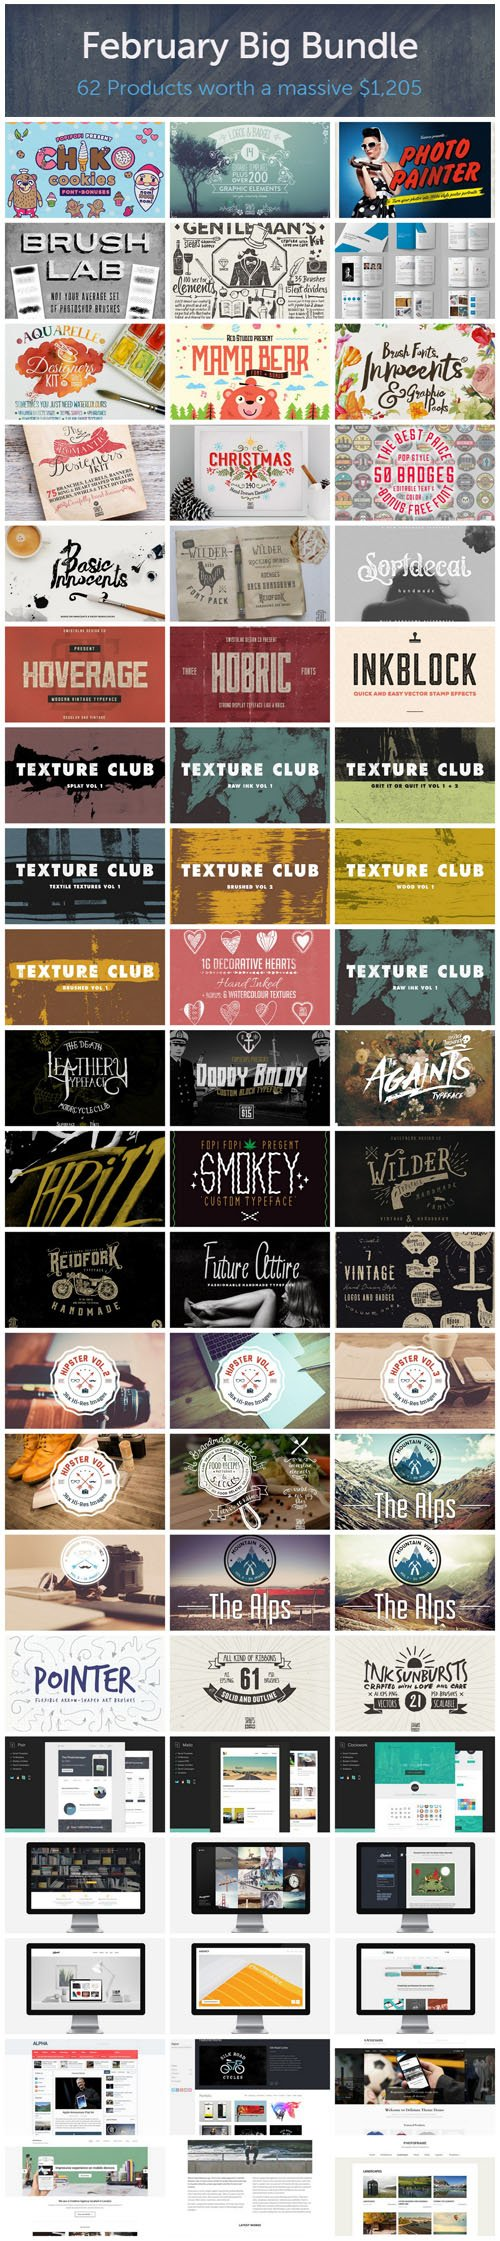 February Big Bundle 2015 - 62 Premium Creativemarket Items